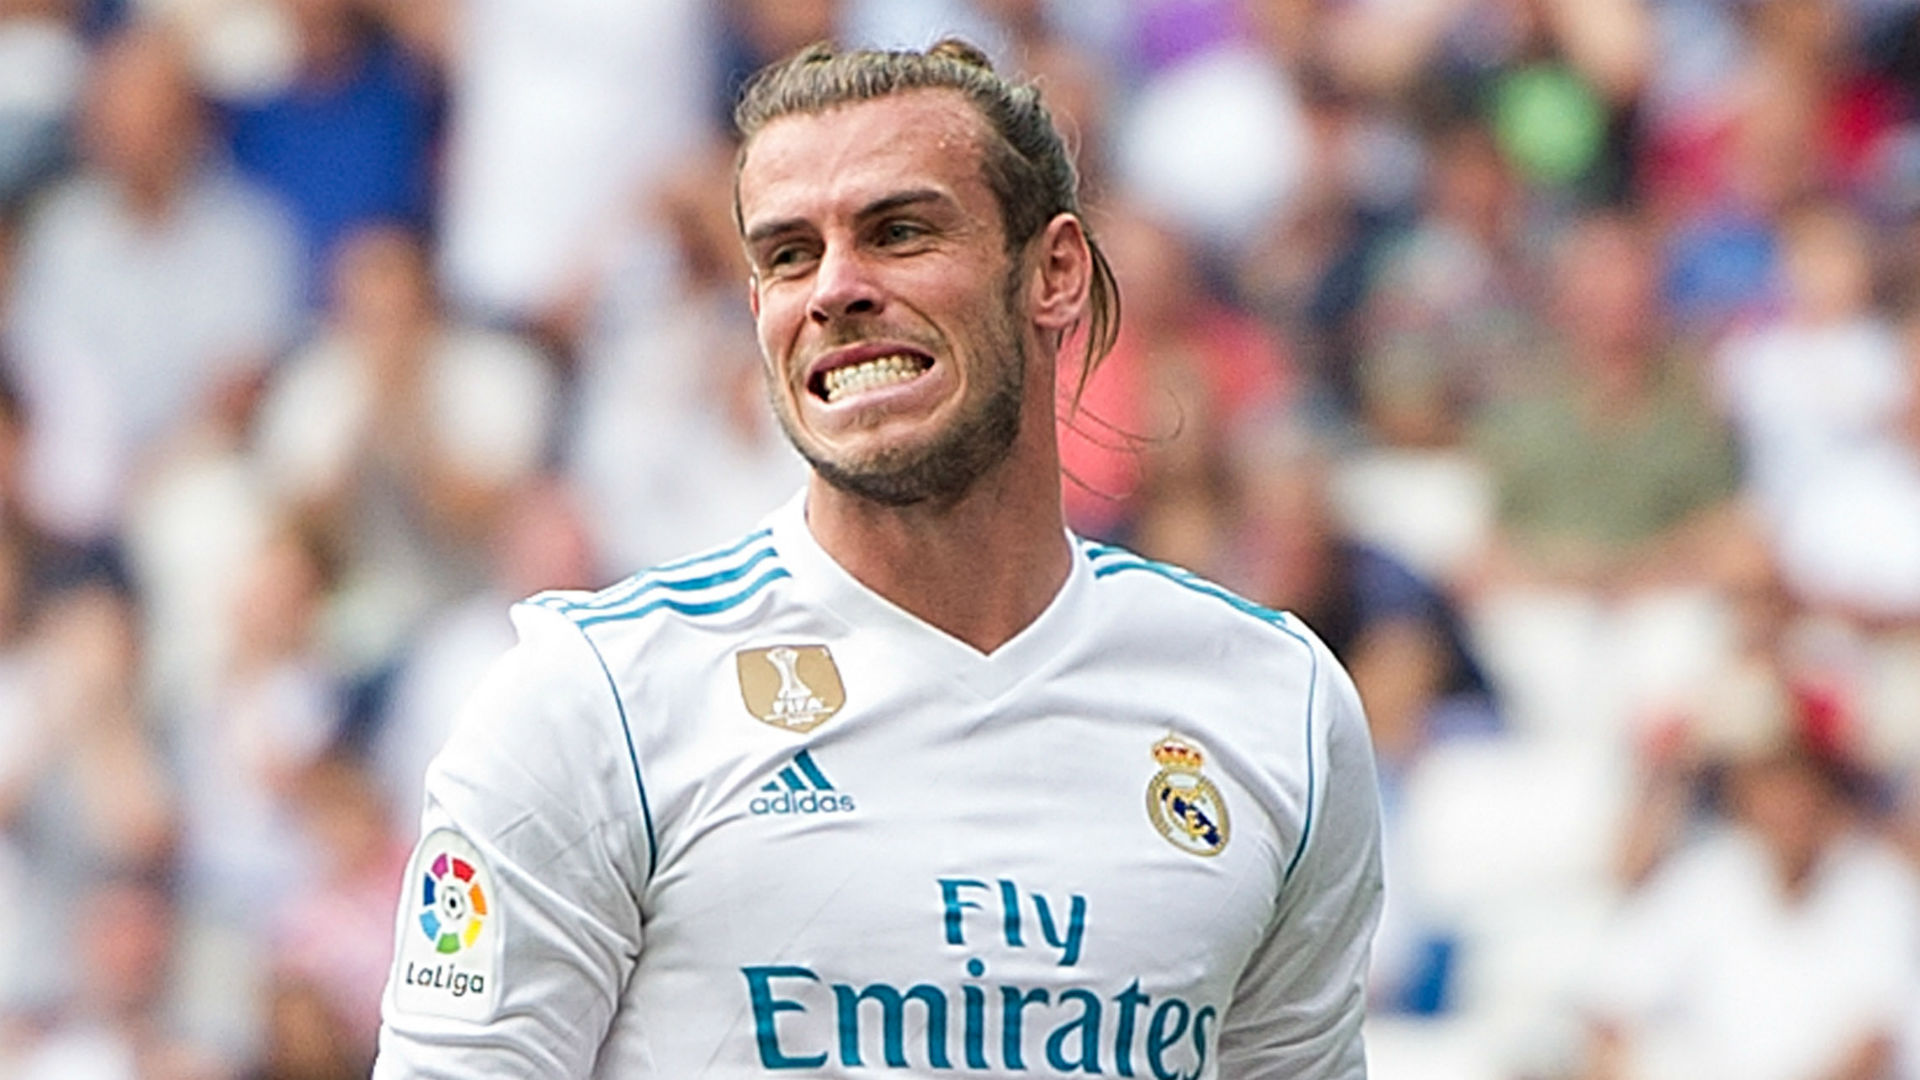 Gareth Bale on joining Man United & returning to Tottenham